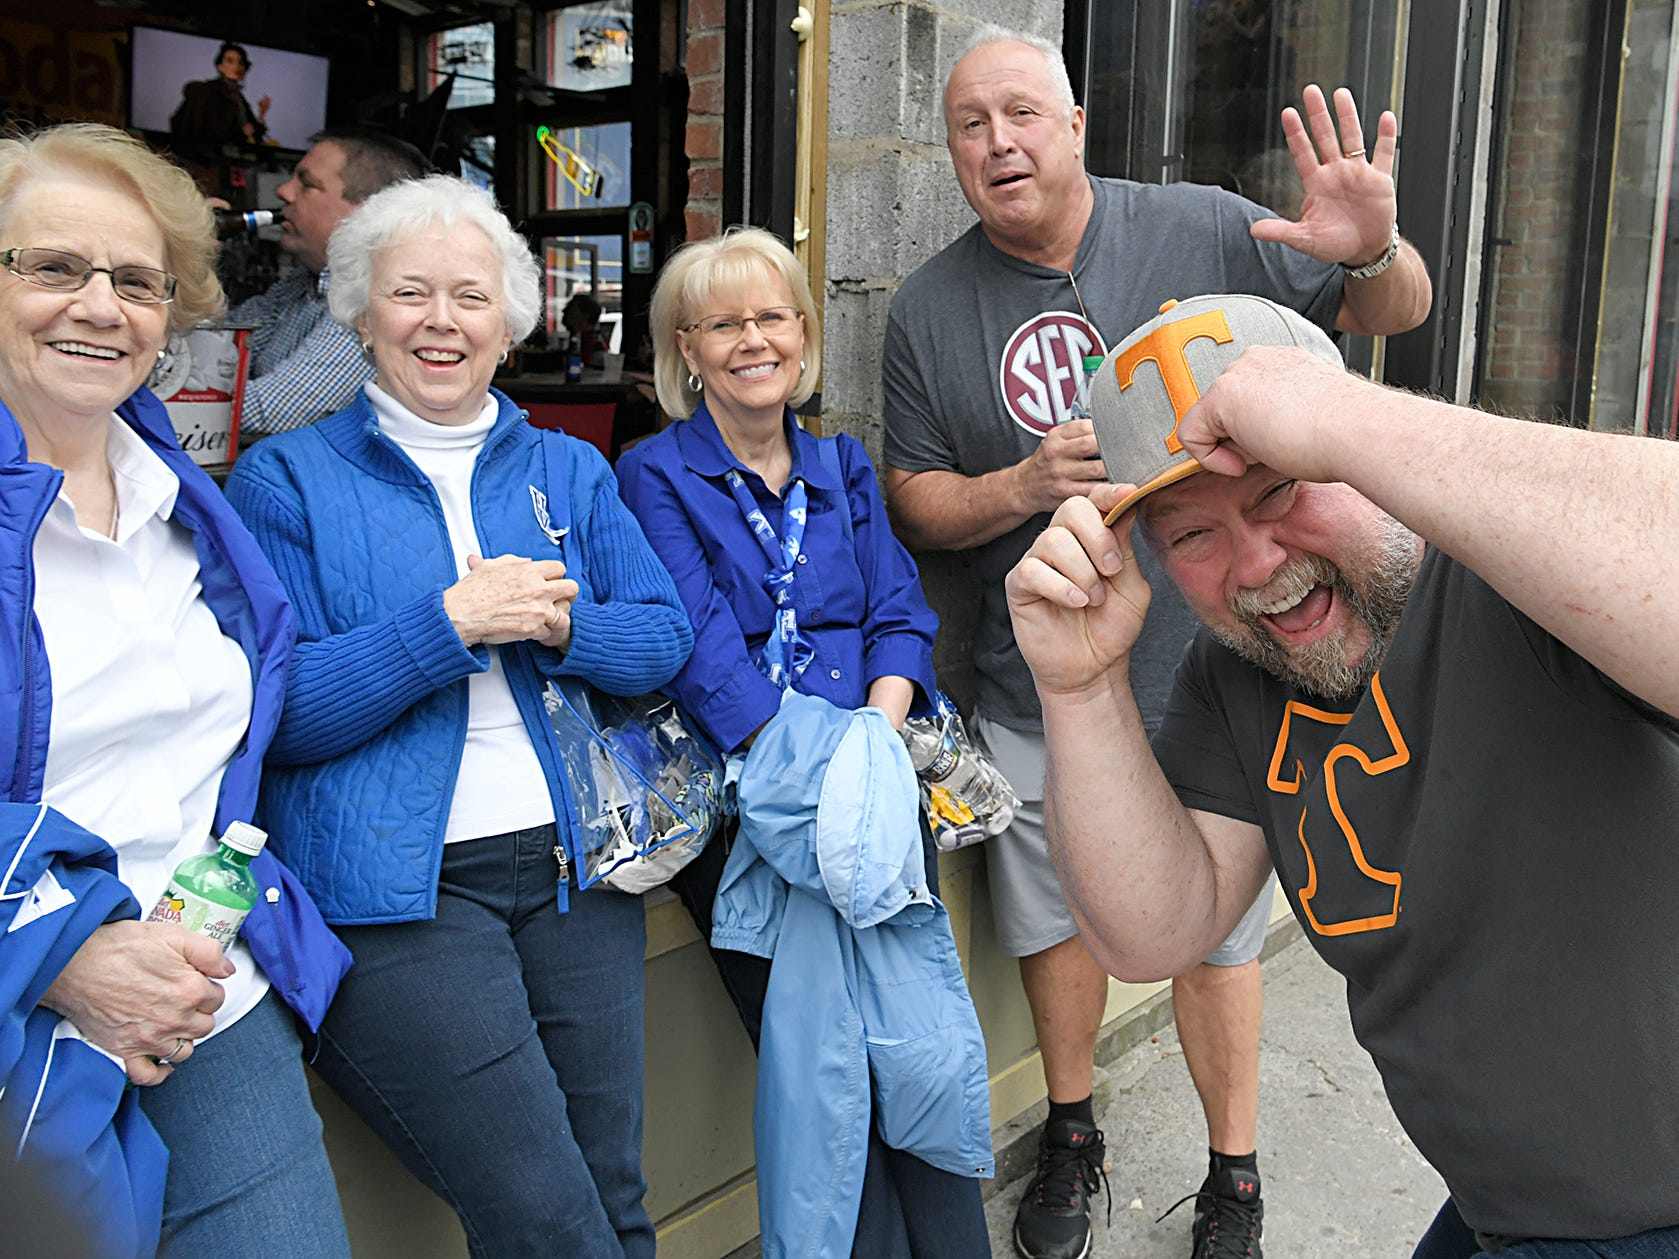 Kentucky fans Faye Warfield, Dee Hayes and Anna Raines have fun with UT fans Aaron Taubert and Johnny Lowe on Broadway during the SEC Mens Basketball Tournament in Nashville on Thursday, March 14, 2019.